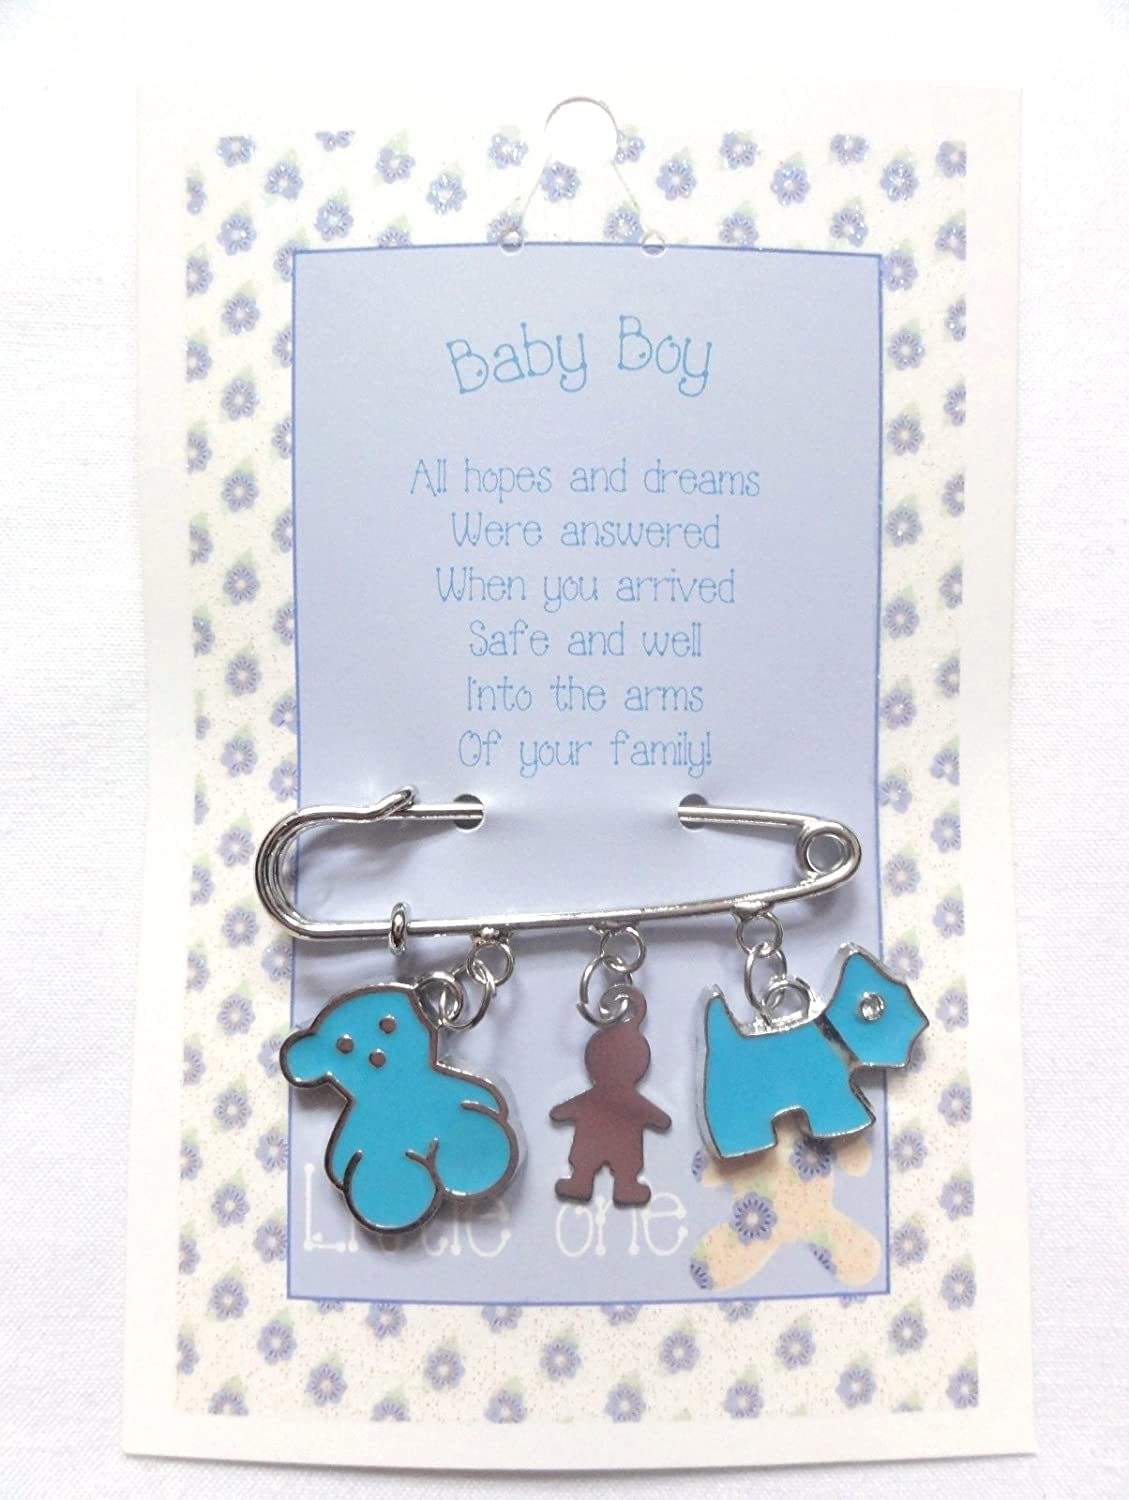 Willow Company Lucky Baby Nappy Pin Pram Hanger Charm - Boy